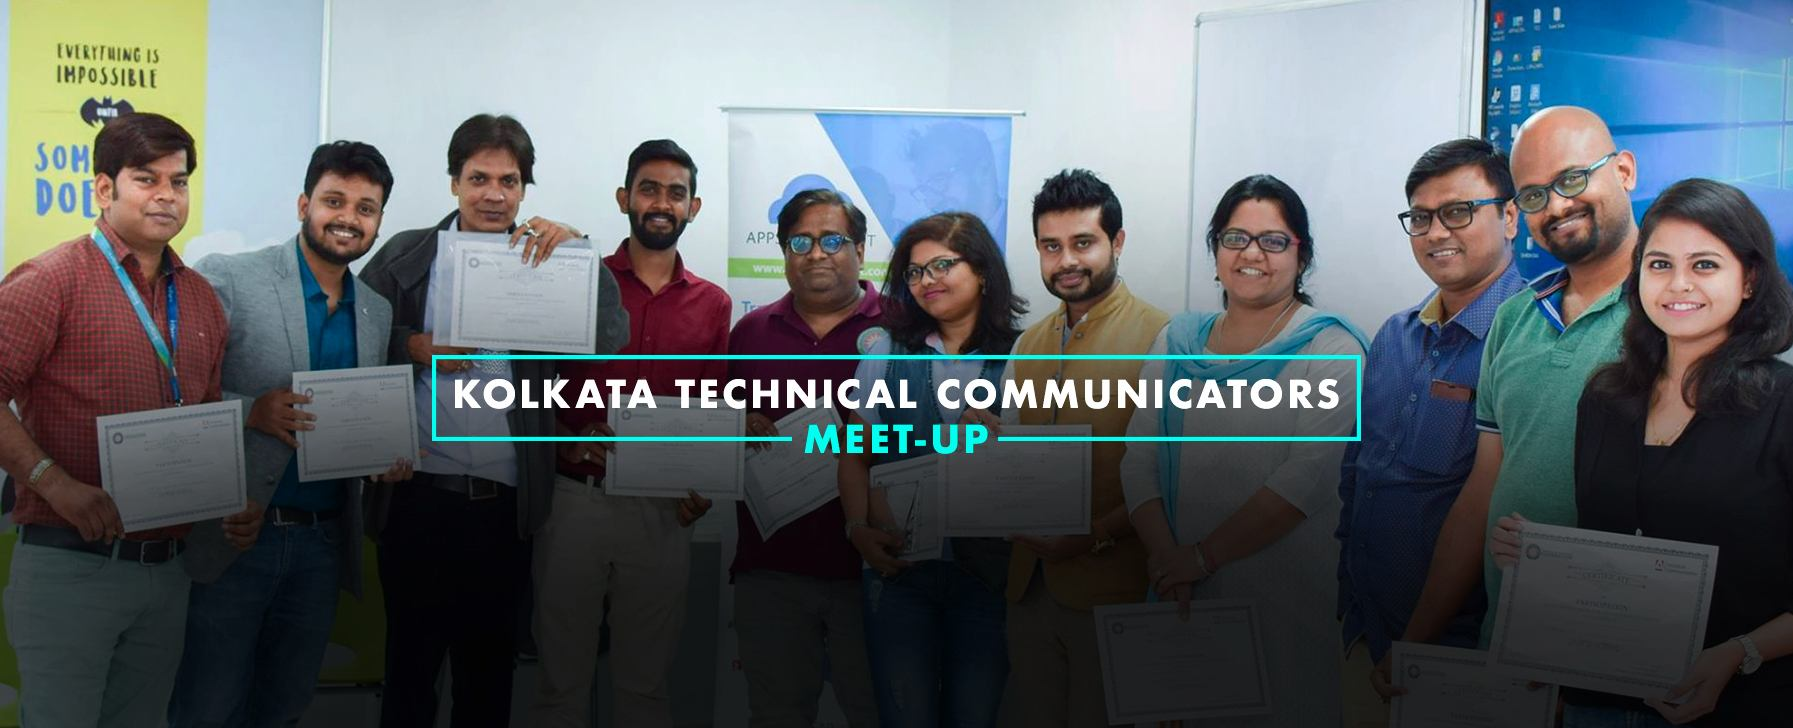 Kolkata-Technical-Communicators-Meet-up